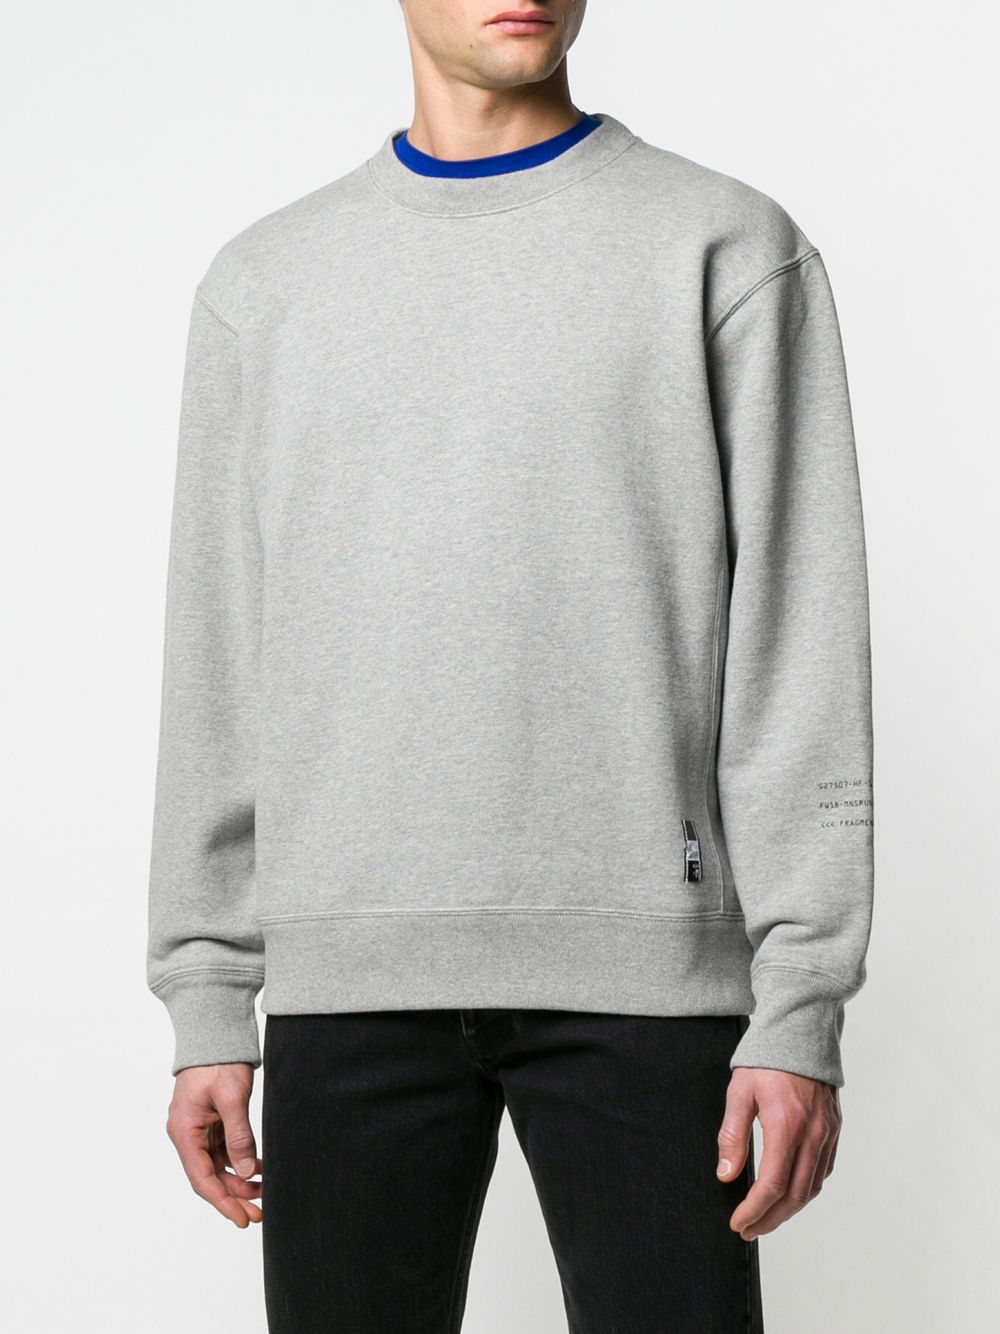 grey Moncler Genius x Fragment Design sweatshirt MONCLER GENIUS |  | 80402-50910